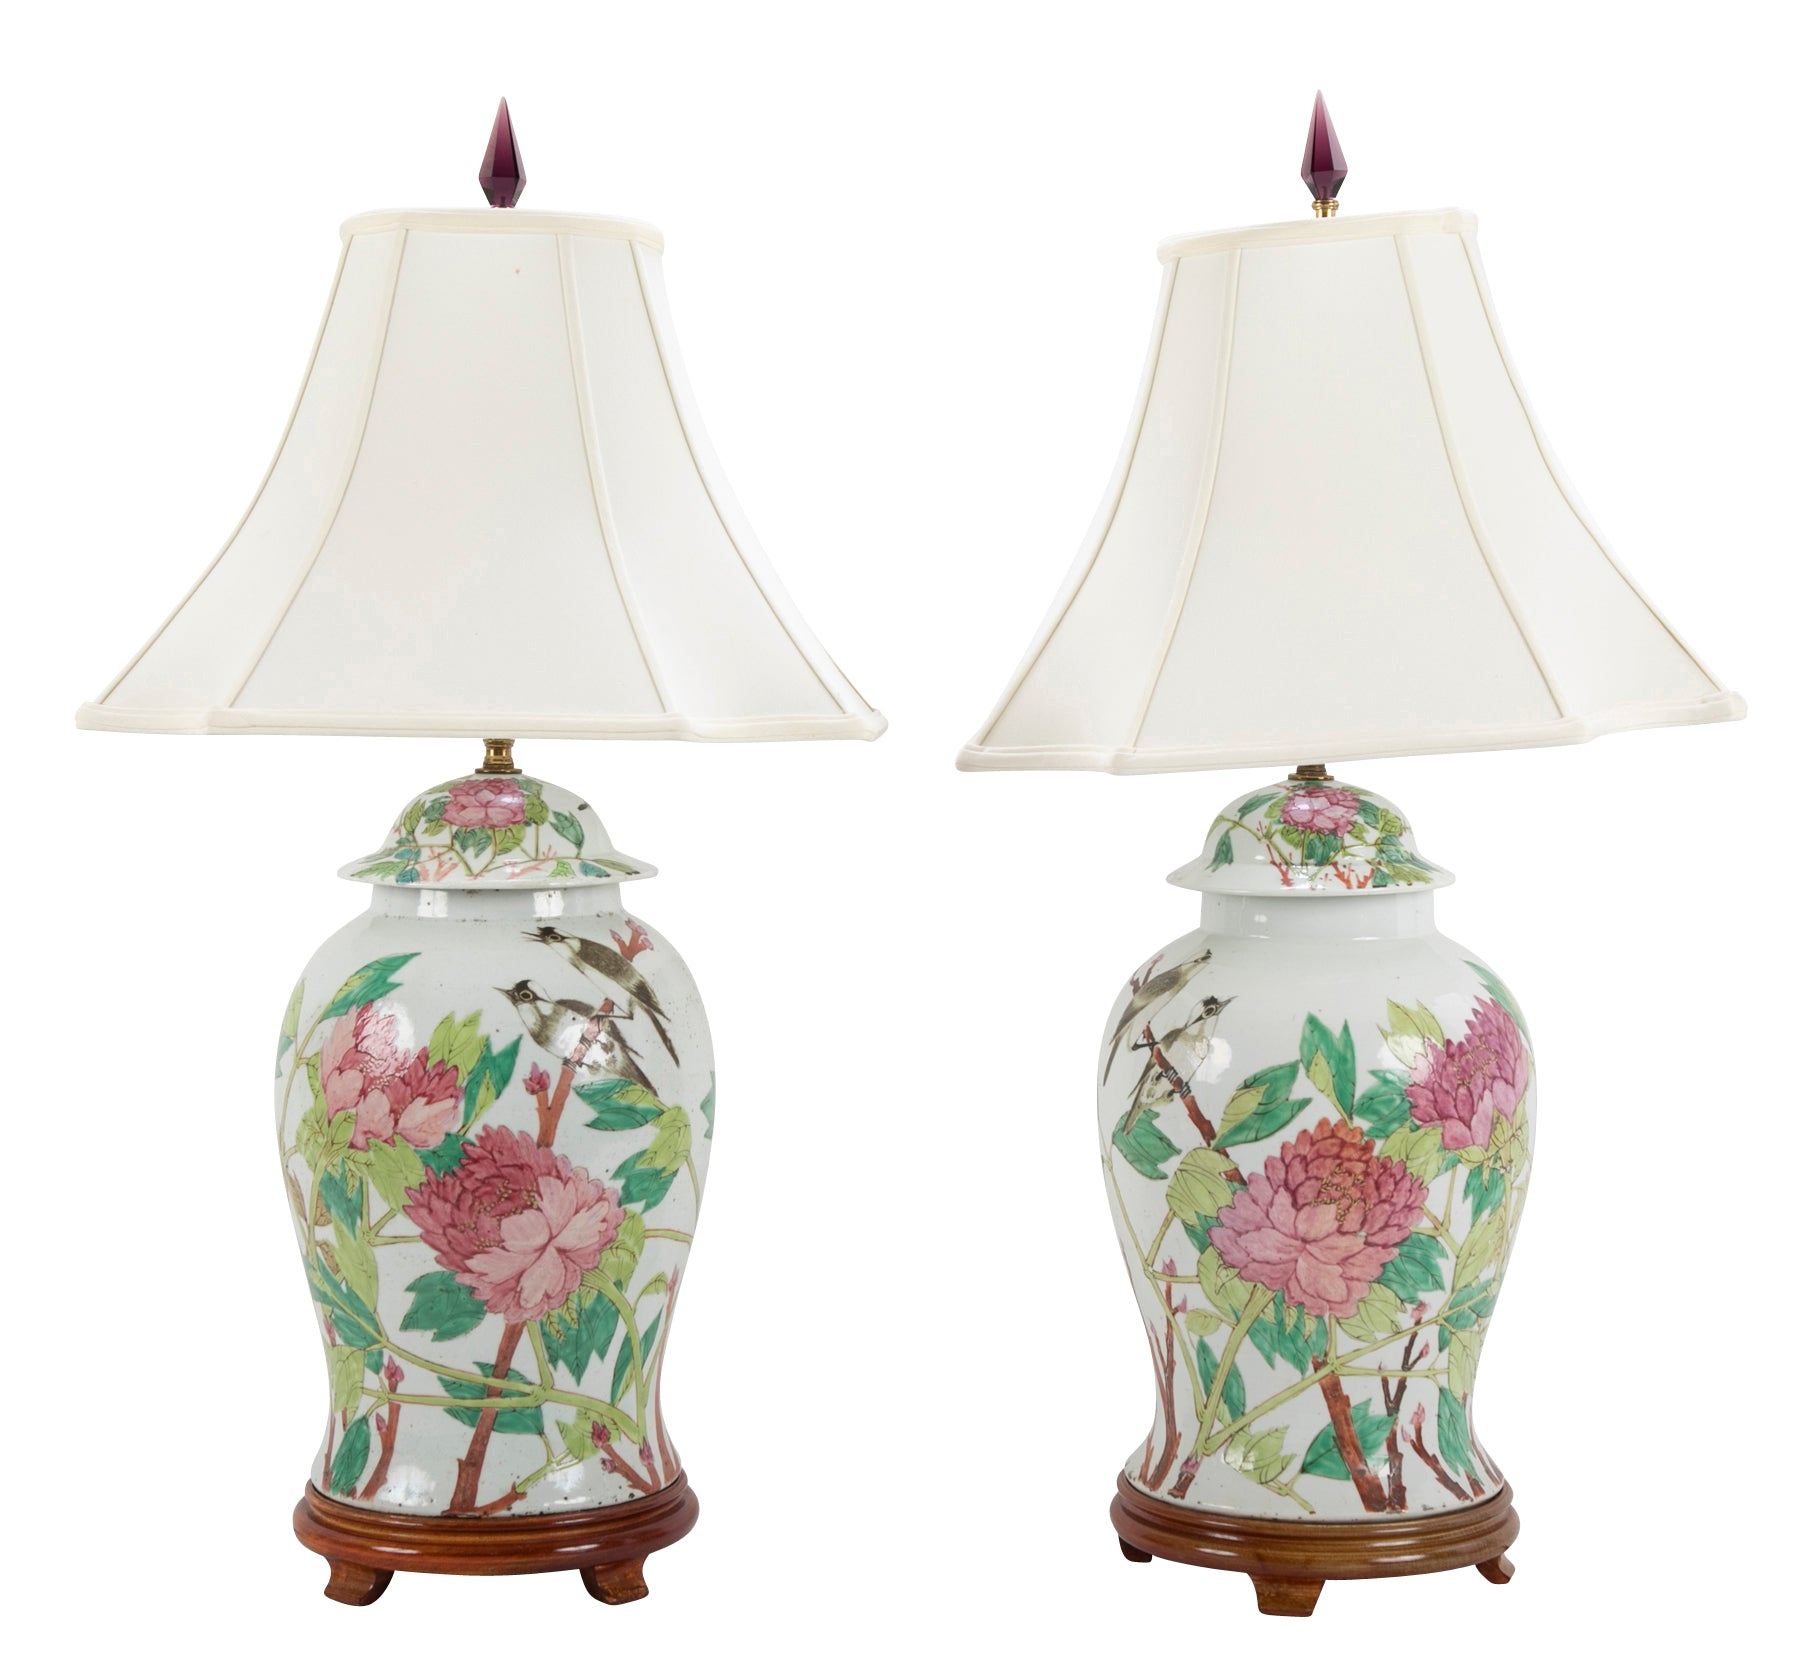 Pair of Chinese Covered Jars with Birds, Peonies & a Poem now Lamps